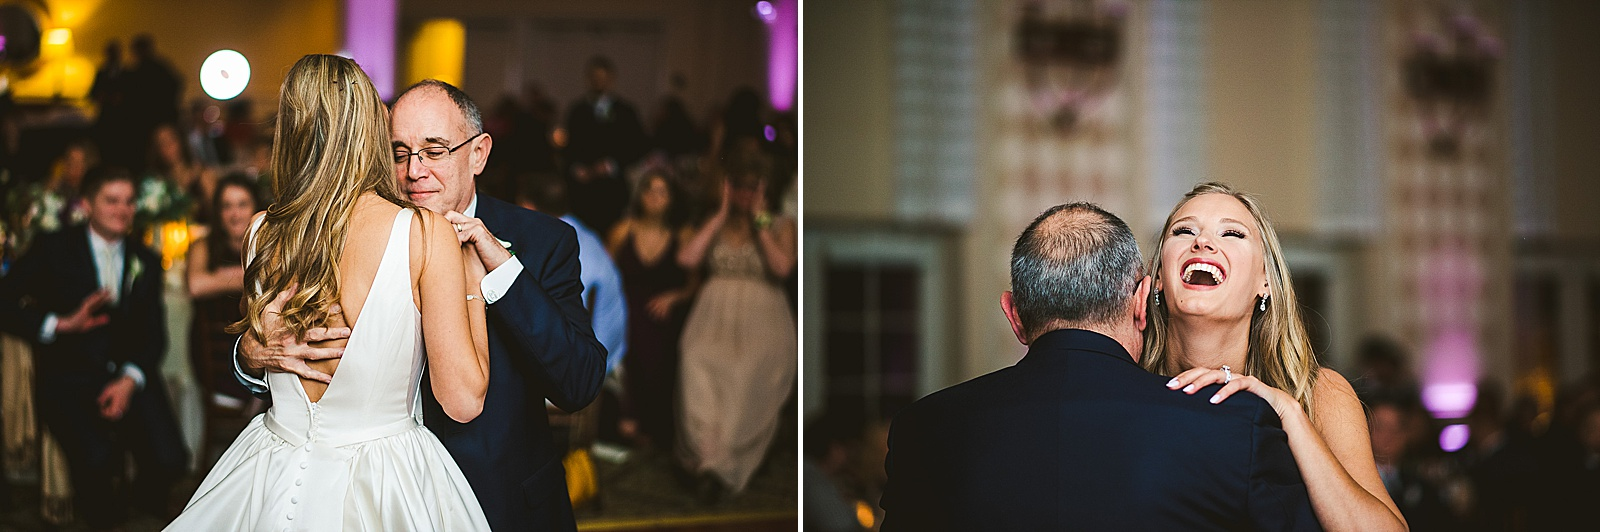 50 father daughter dance inspo - The Glen Club Wedding Photos // Katie + Nick